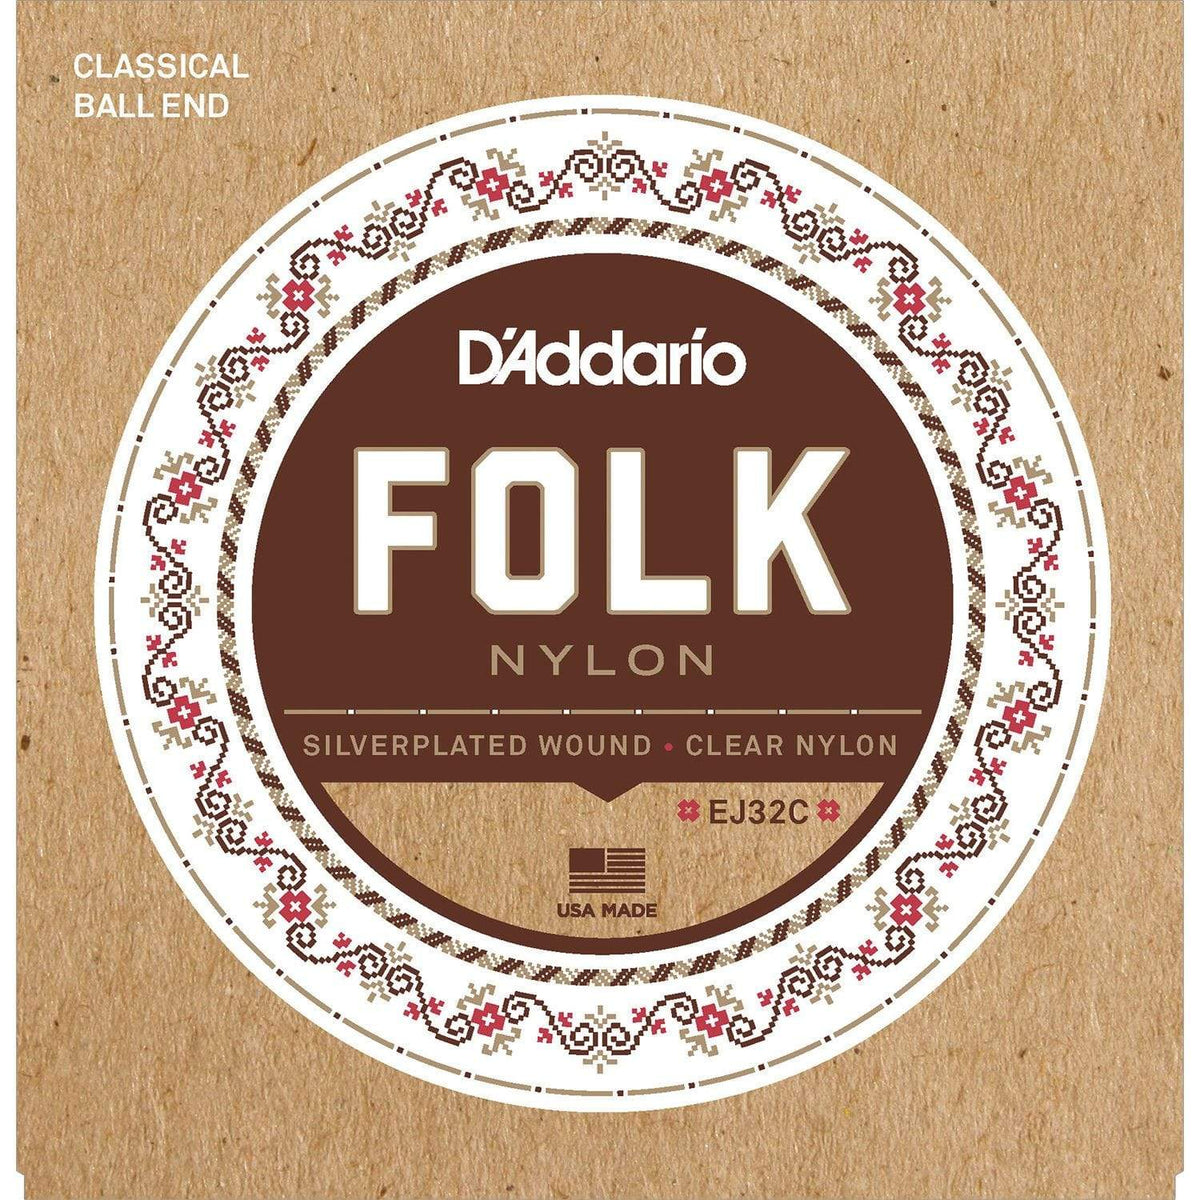 D'ADDARIO STRINGS - ACOUSTIC GUITAR STRINGS Default EJ32C Folk Nylon, Ball End, Silver Wound/Clear Nylon Trebles